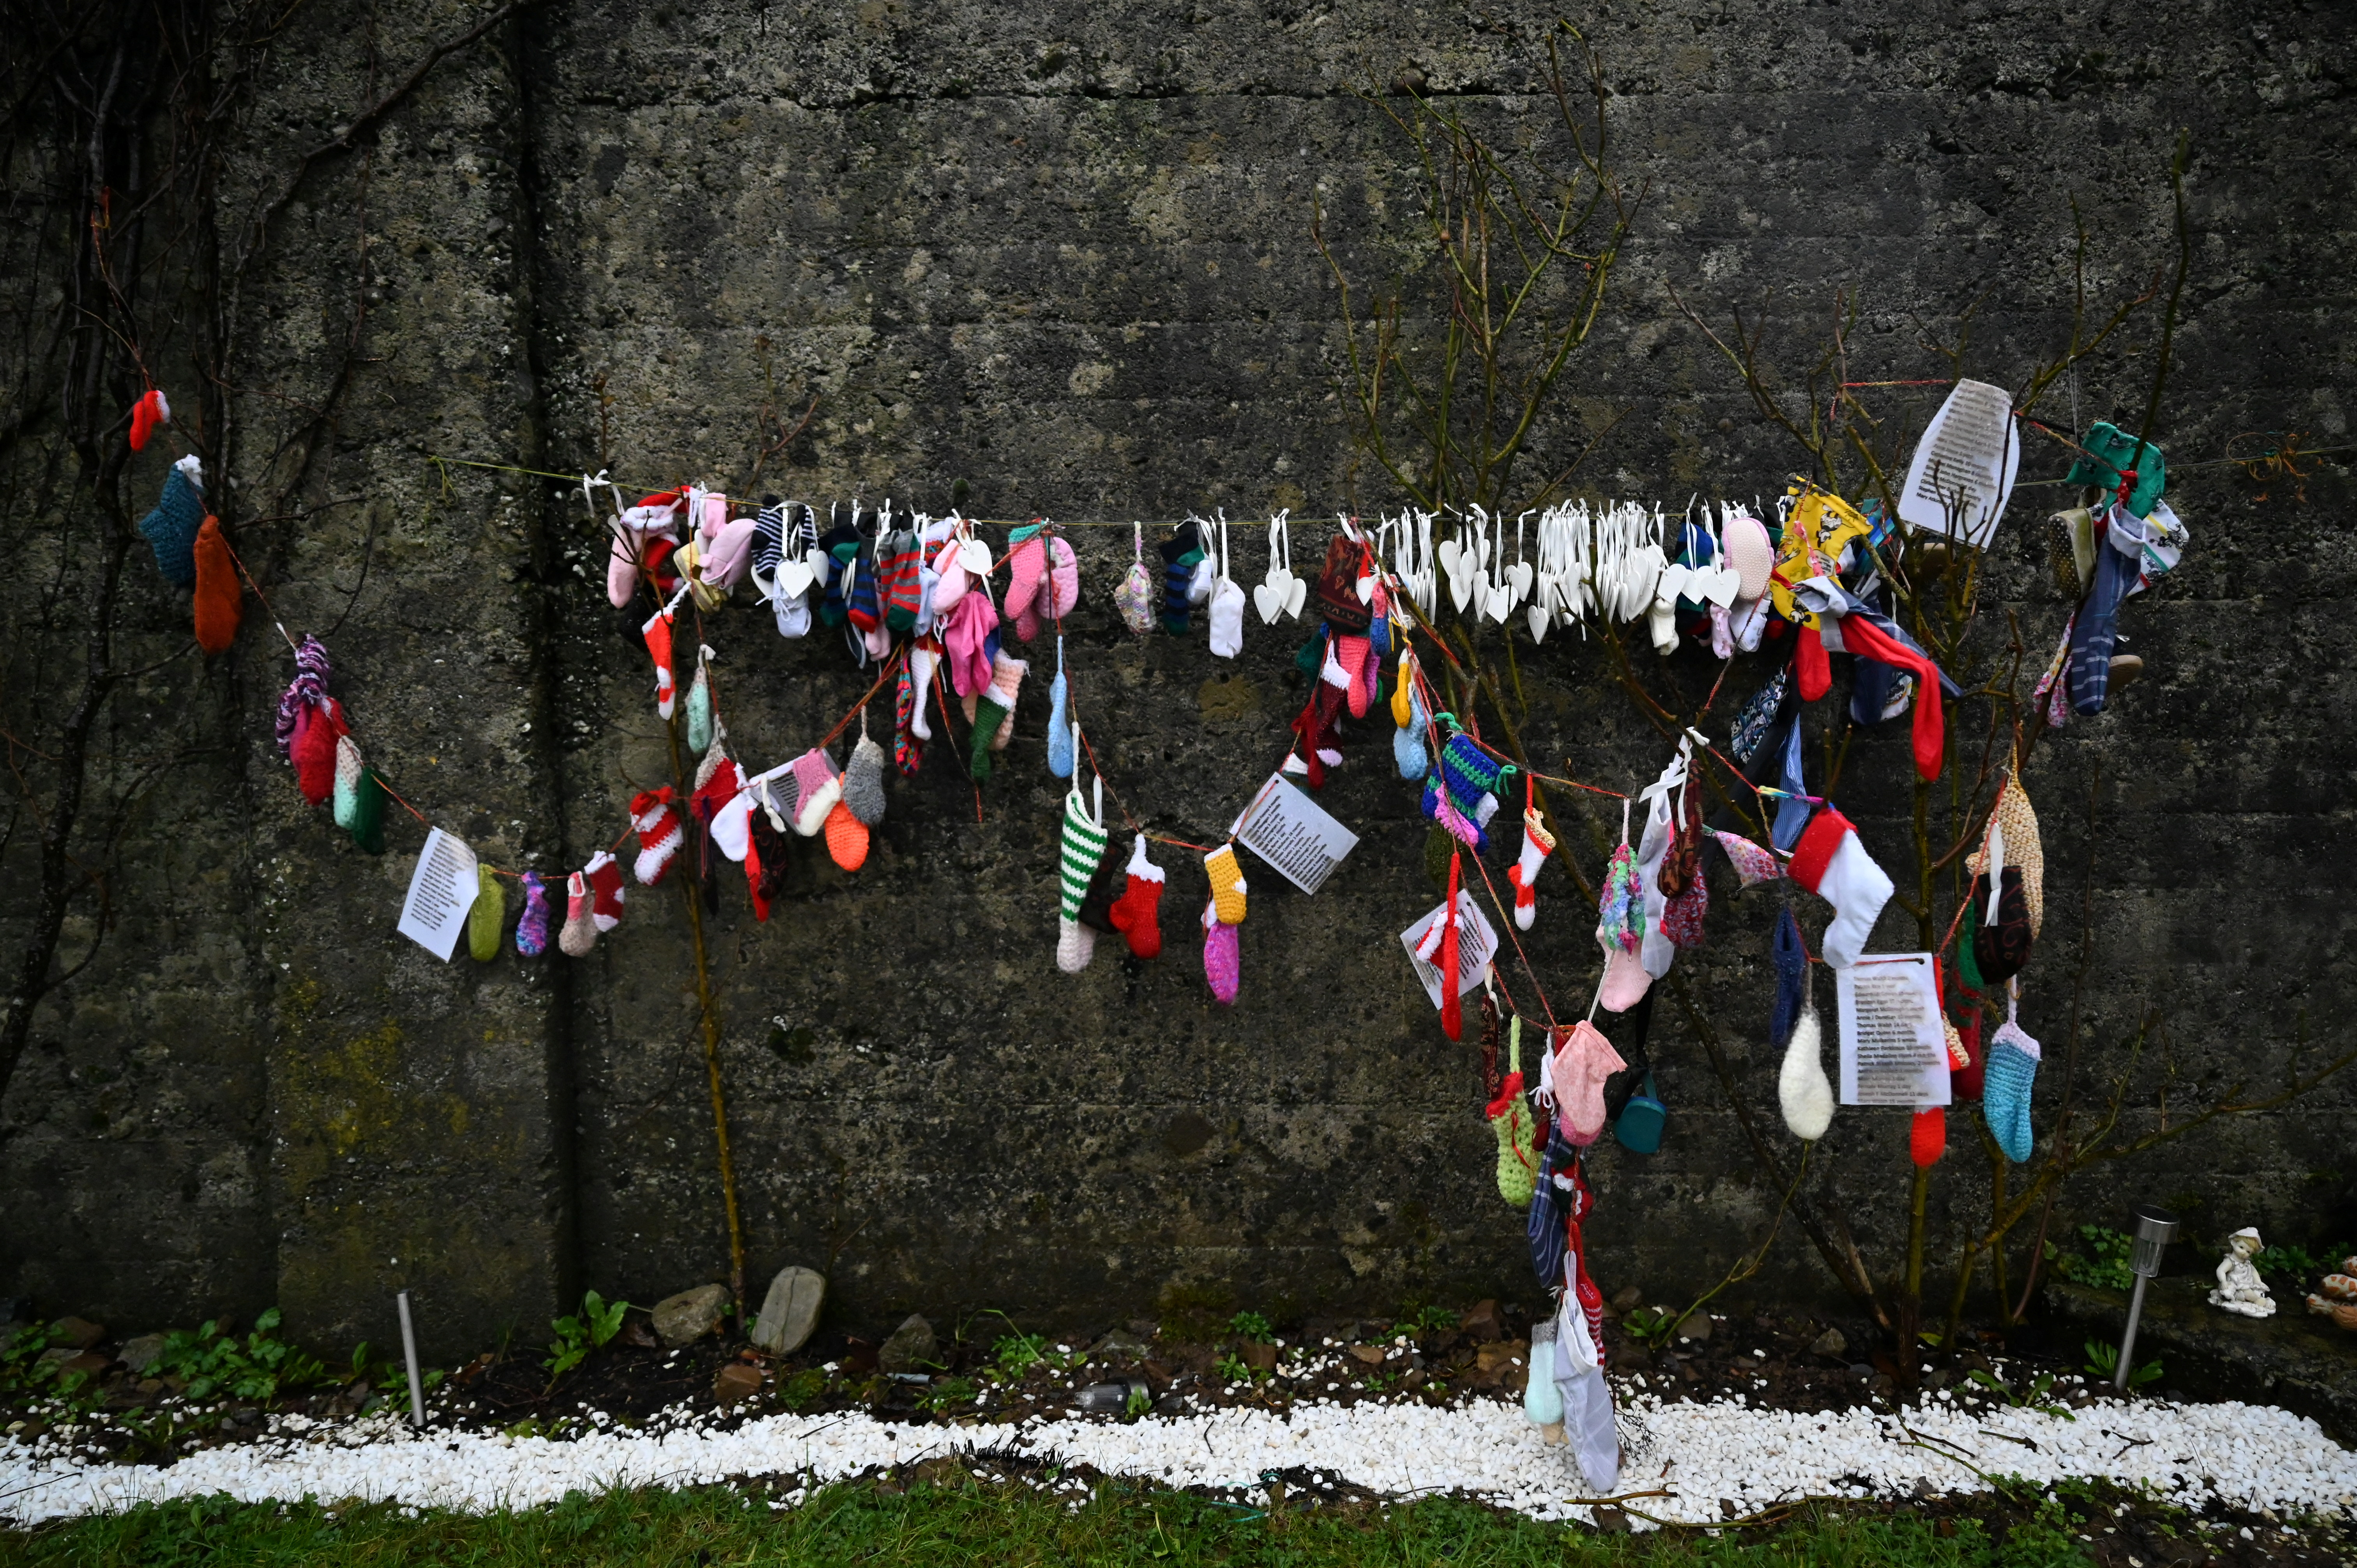 Children's socks and other items hang on a wall at the Tuam graveyard, where the bodies of 796 babies were uncovered at the site of a former Catholic home for unmarried mothers and their children on the day a government-ordered inquiry into former Church-run homes for unmarried mothers is formally published, in Tuam, Ireland, January 12, 2021. REUTERS/Clodagh Kilcoyne